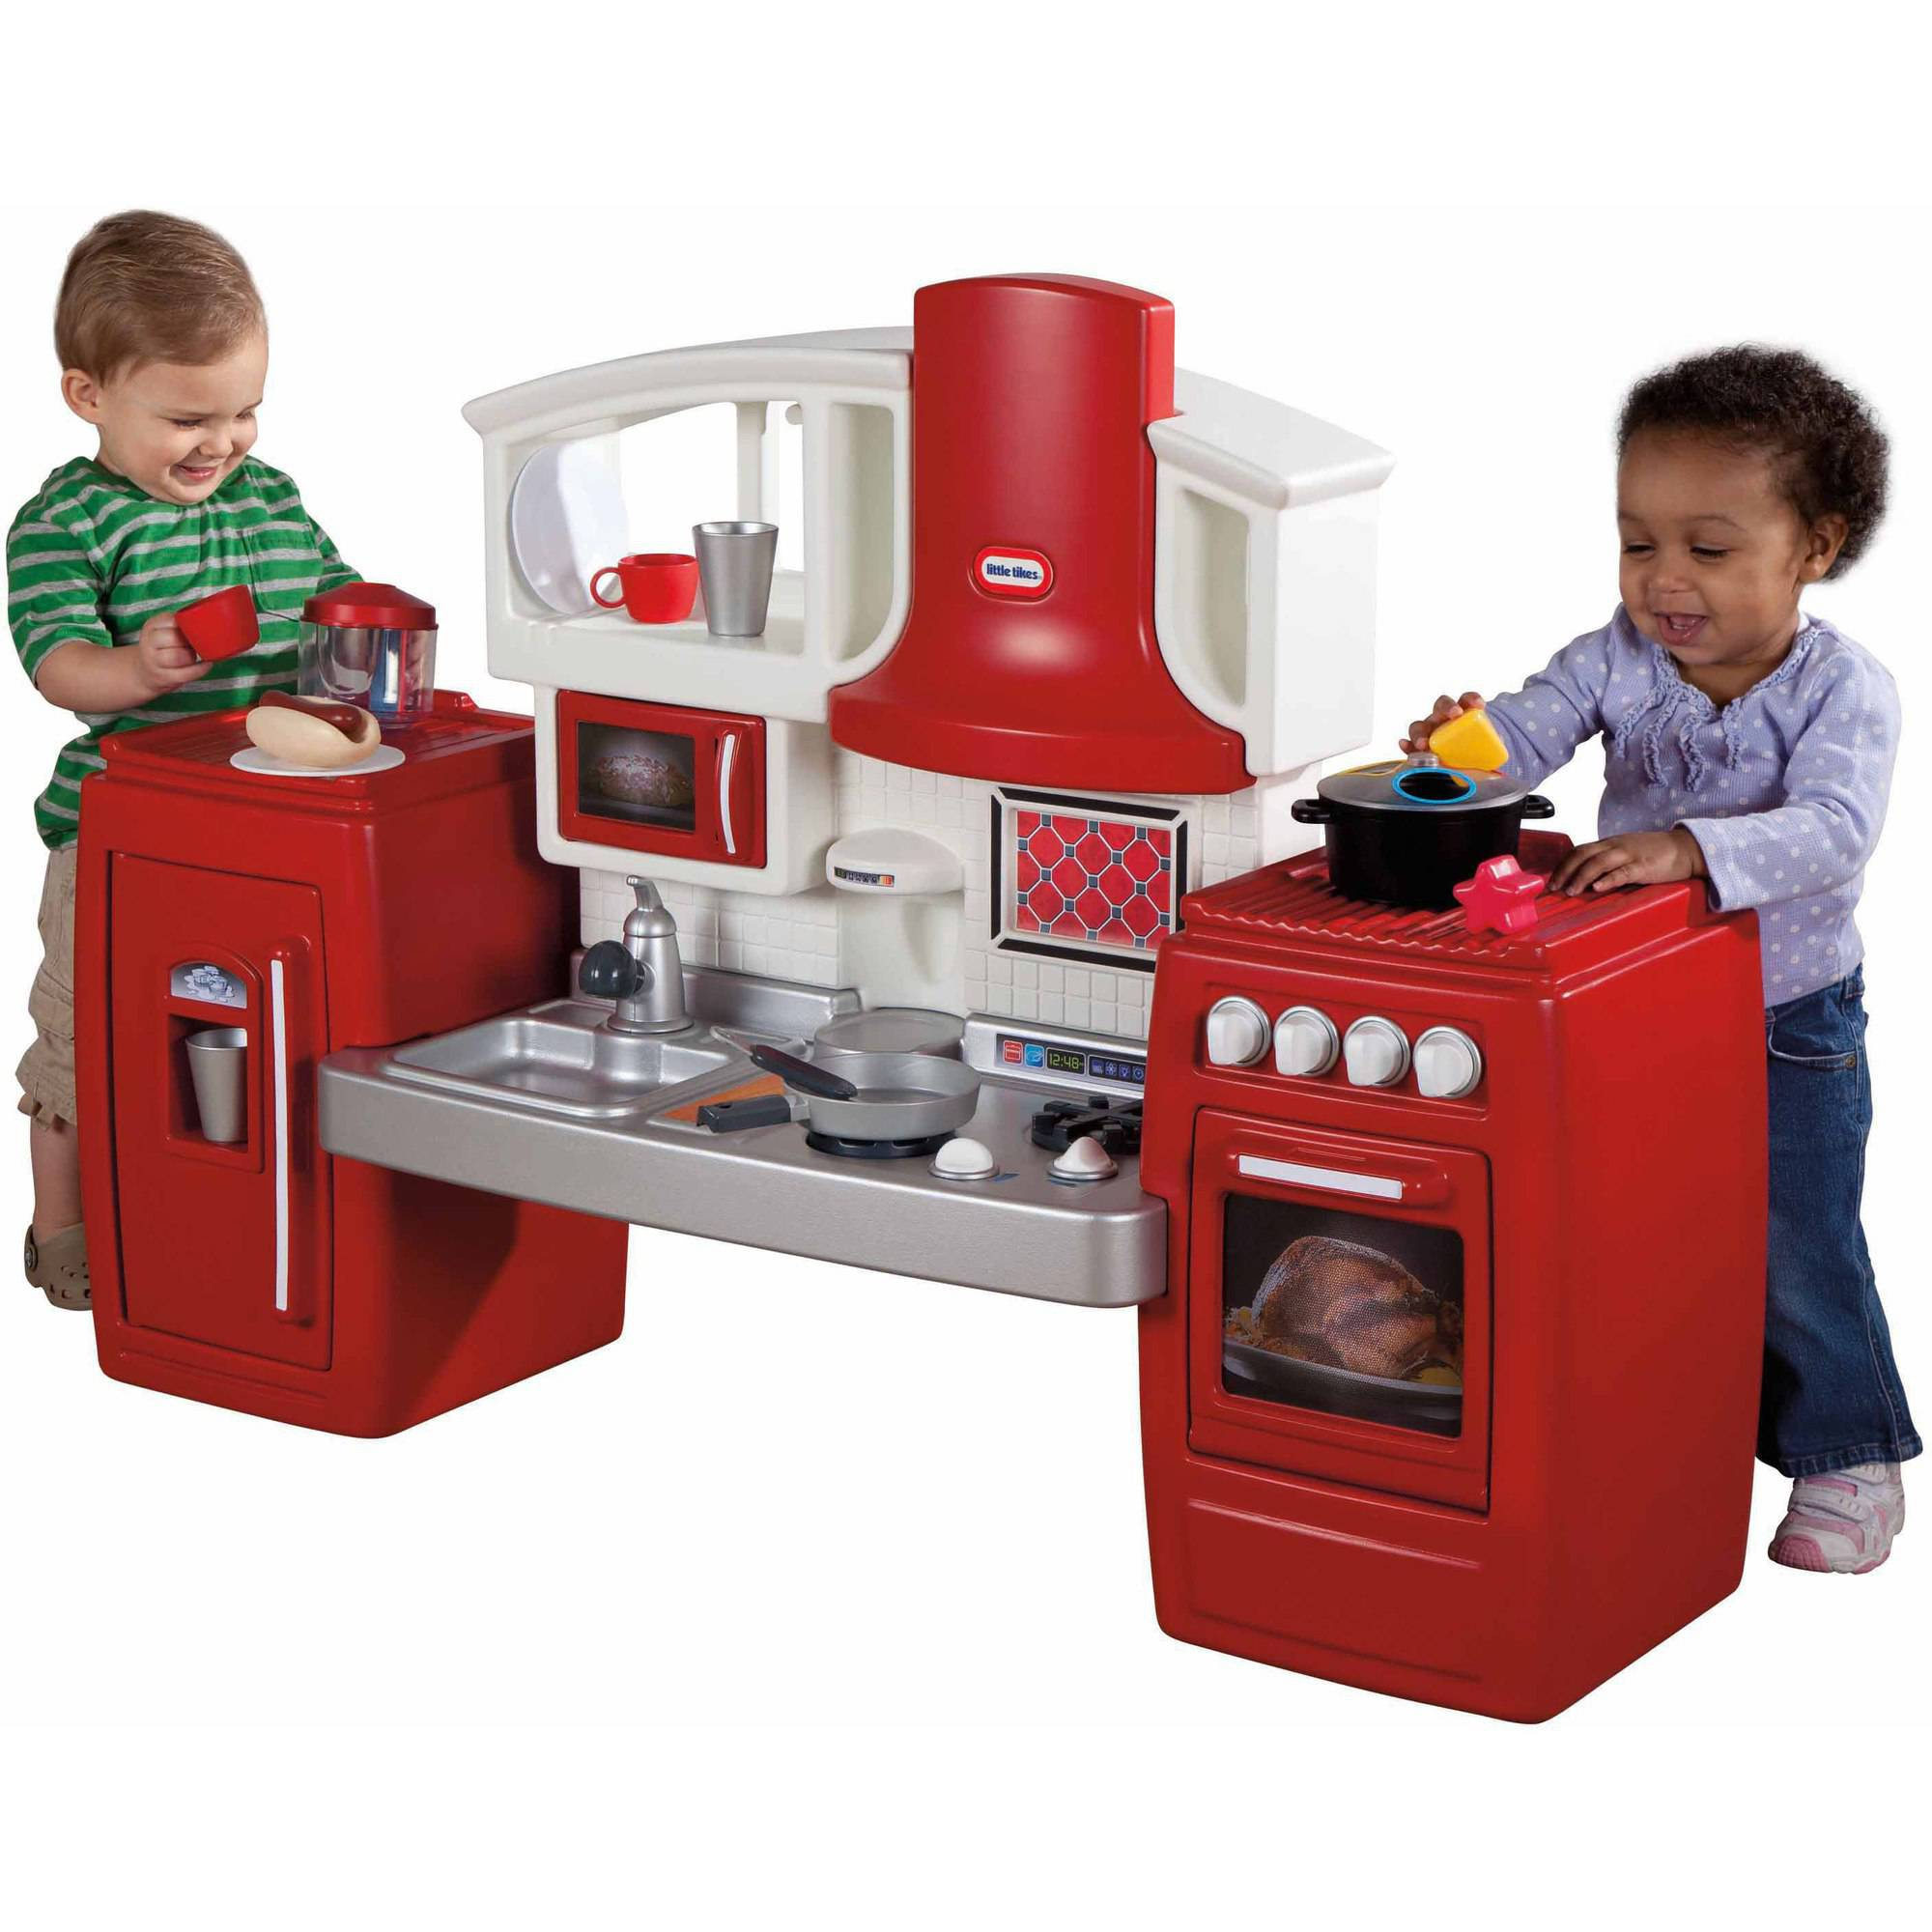 Little Tikes Cook 'N' Grow Kitchen